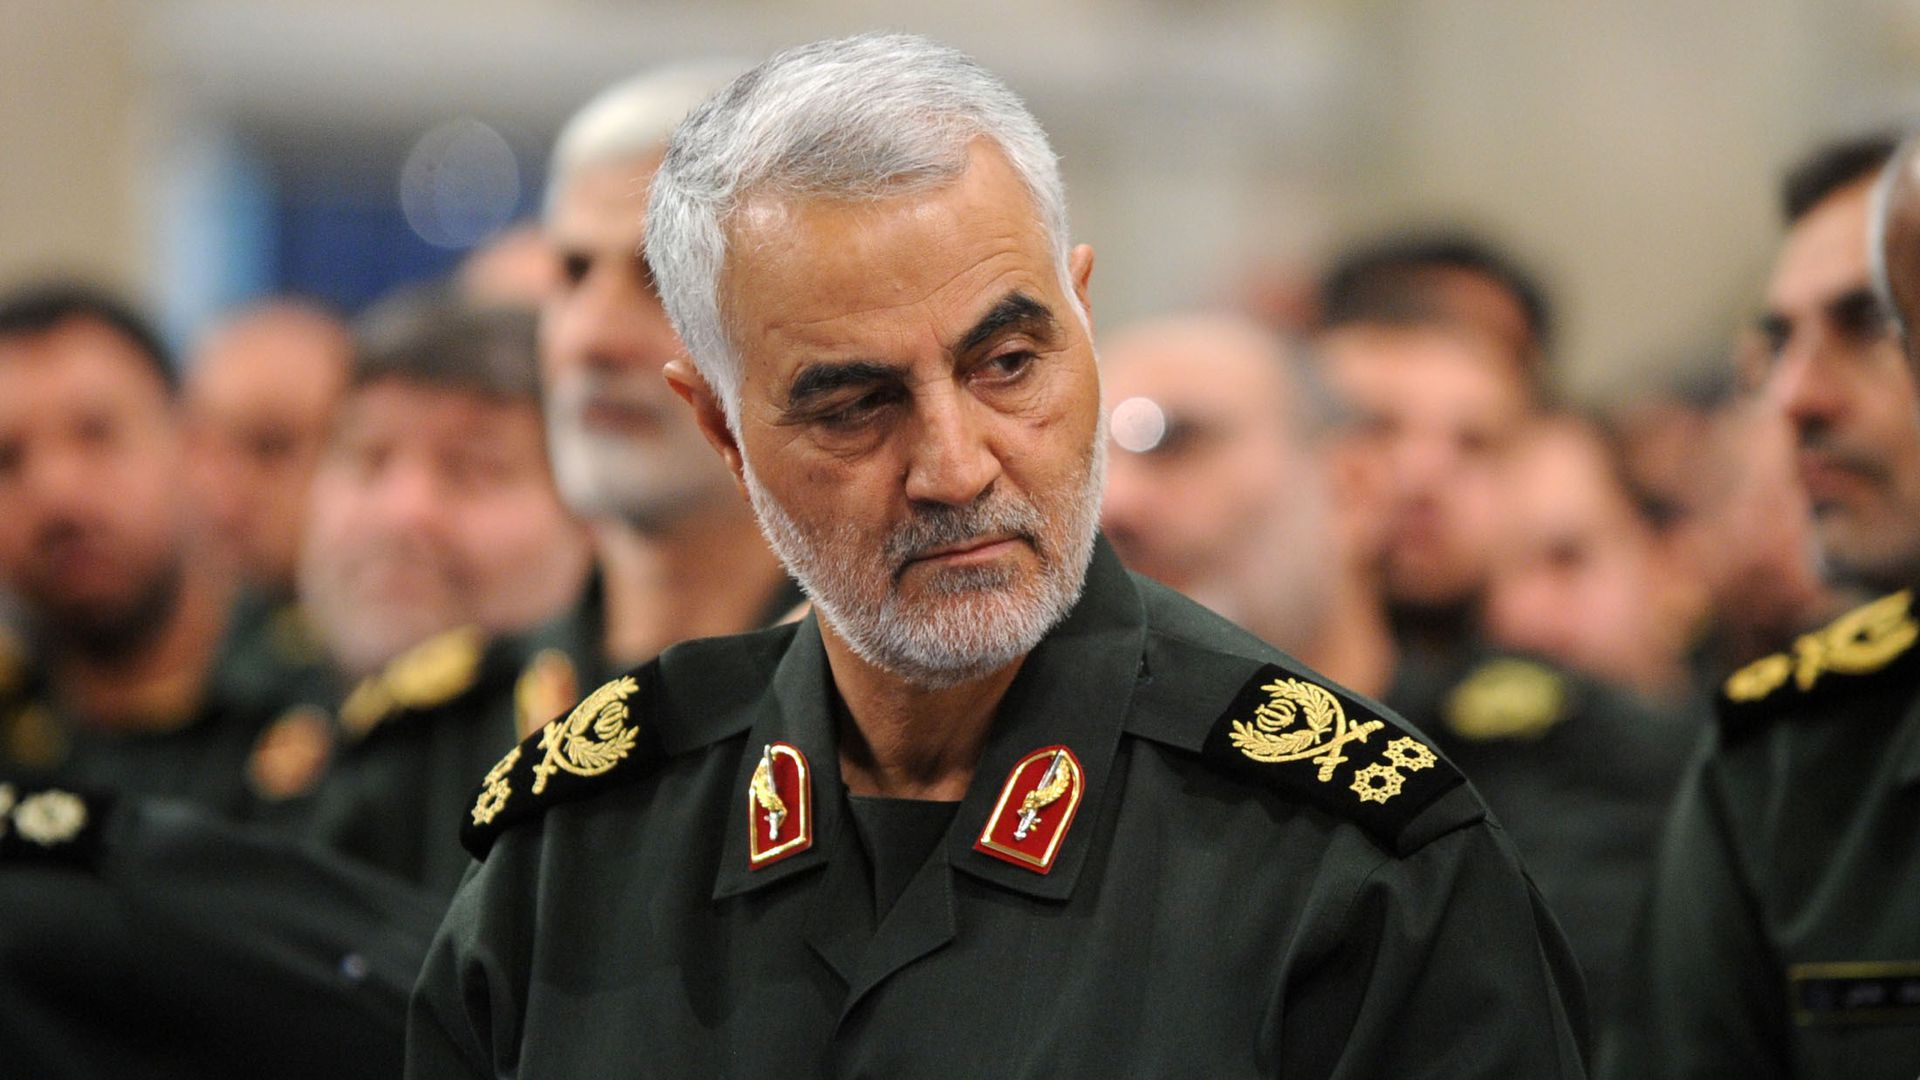 WHO WAS THE SOLEIMANI?